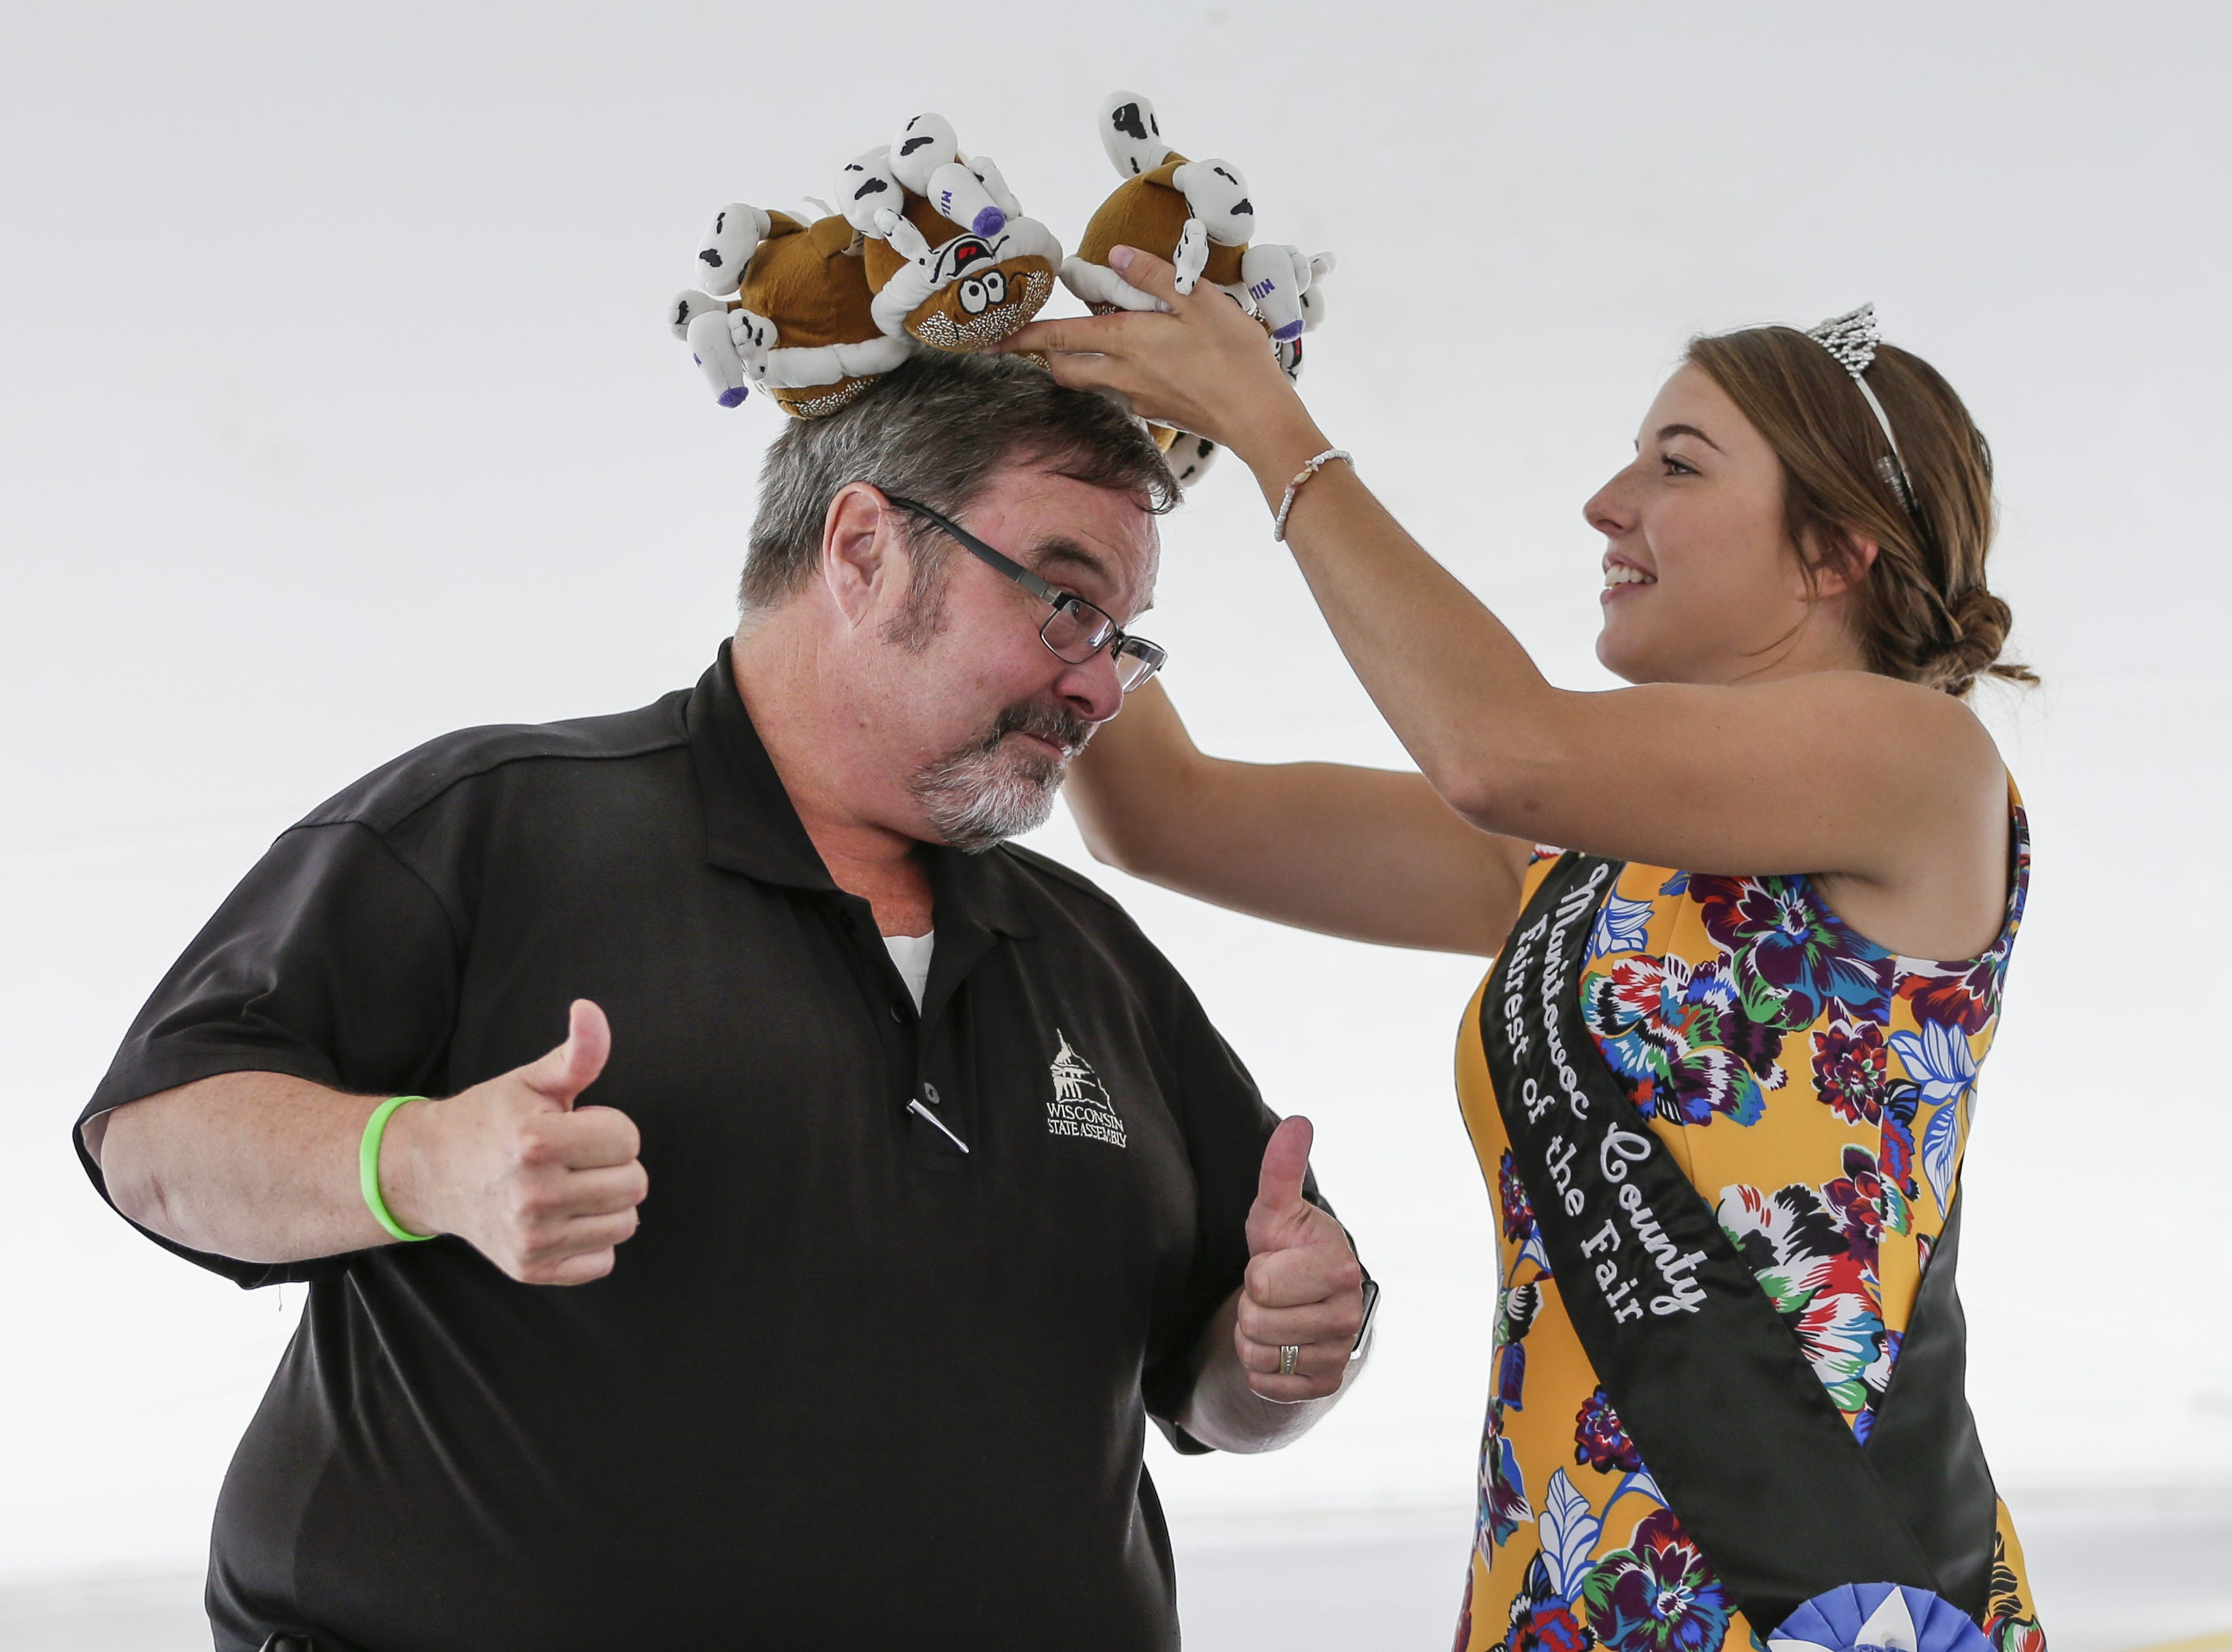 Emily Hutterer, Manitowoc County's Fairest of the Fair, crowns State Rep. Paul Tittl champion of the cream puff eating contest at the Manitowoc County Fair Thursday, Aug. 23, 2018, in Manitowoc.